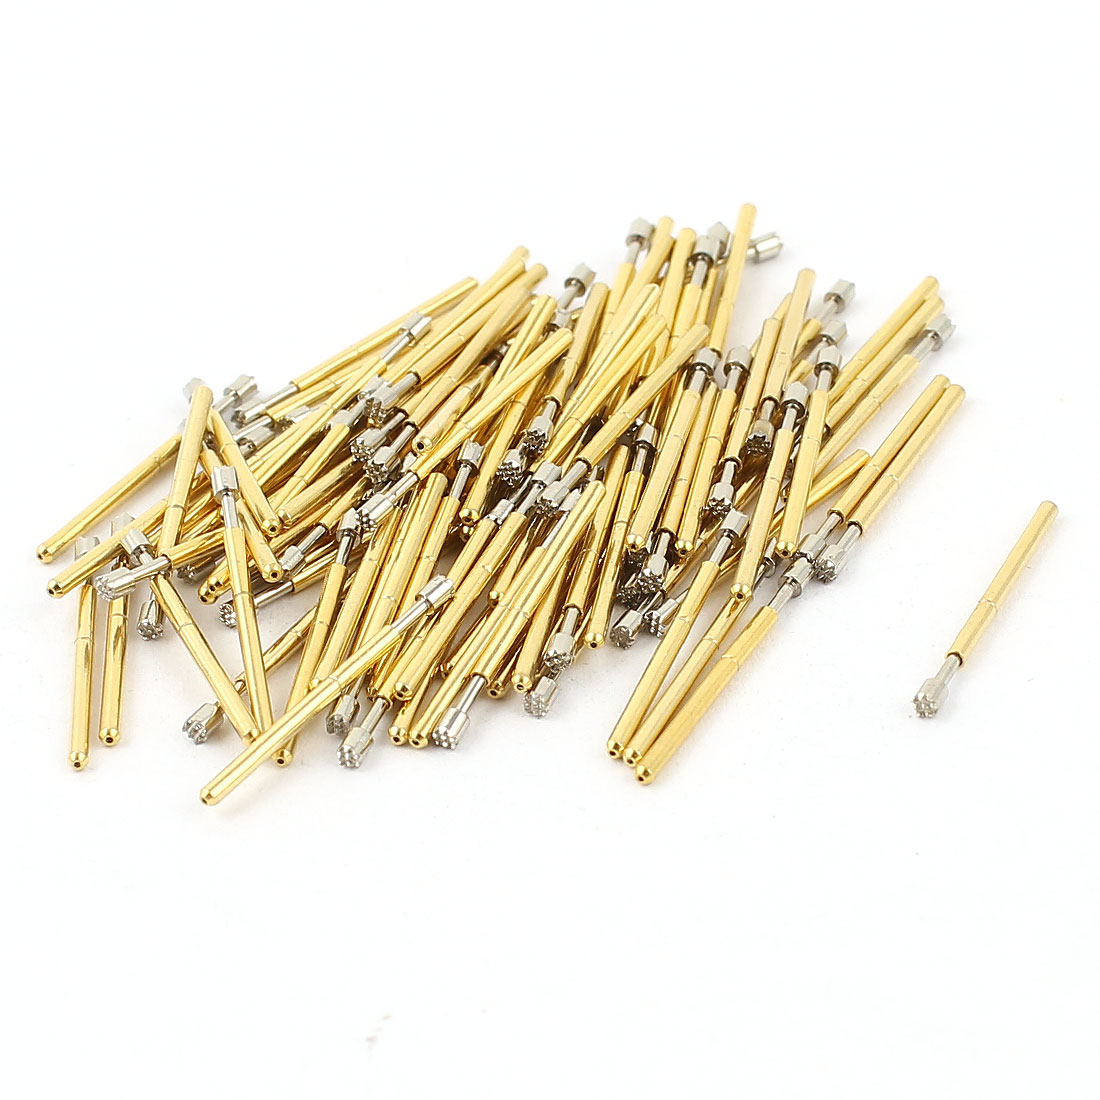 100 Pcs P75-H2 1.3mm 9-Point Crown Tip Spring Testing Probes Pin